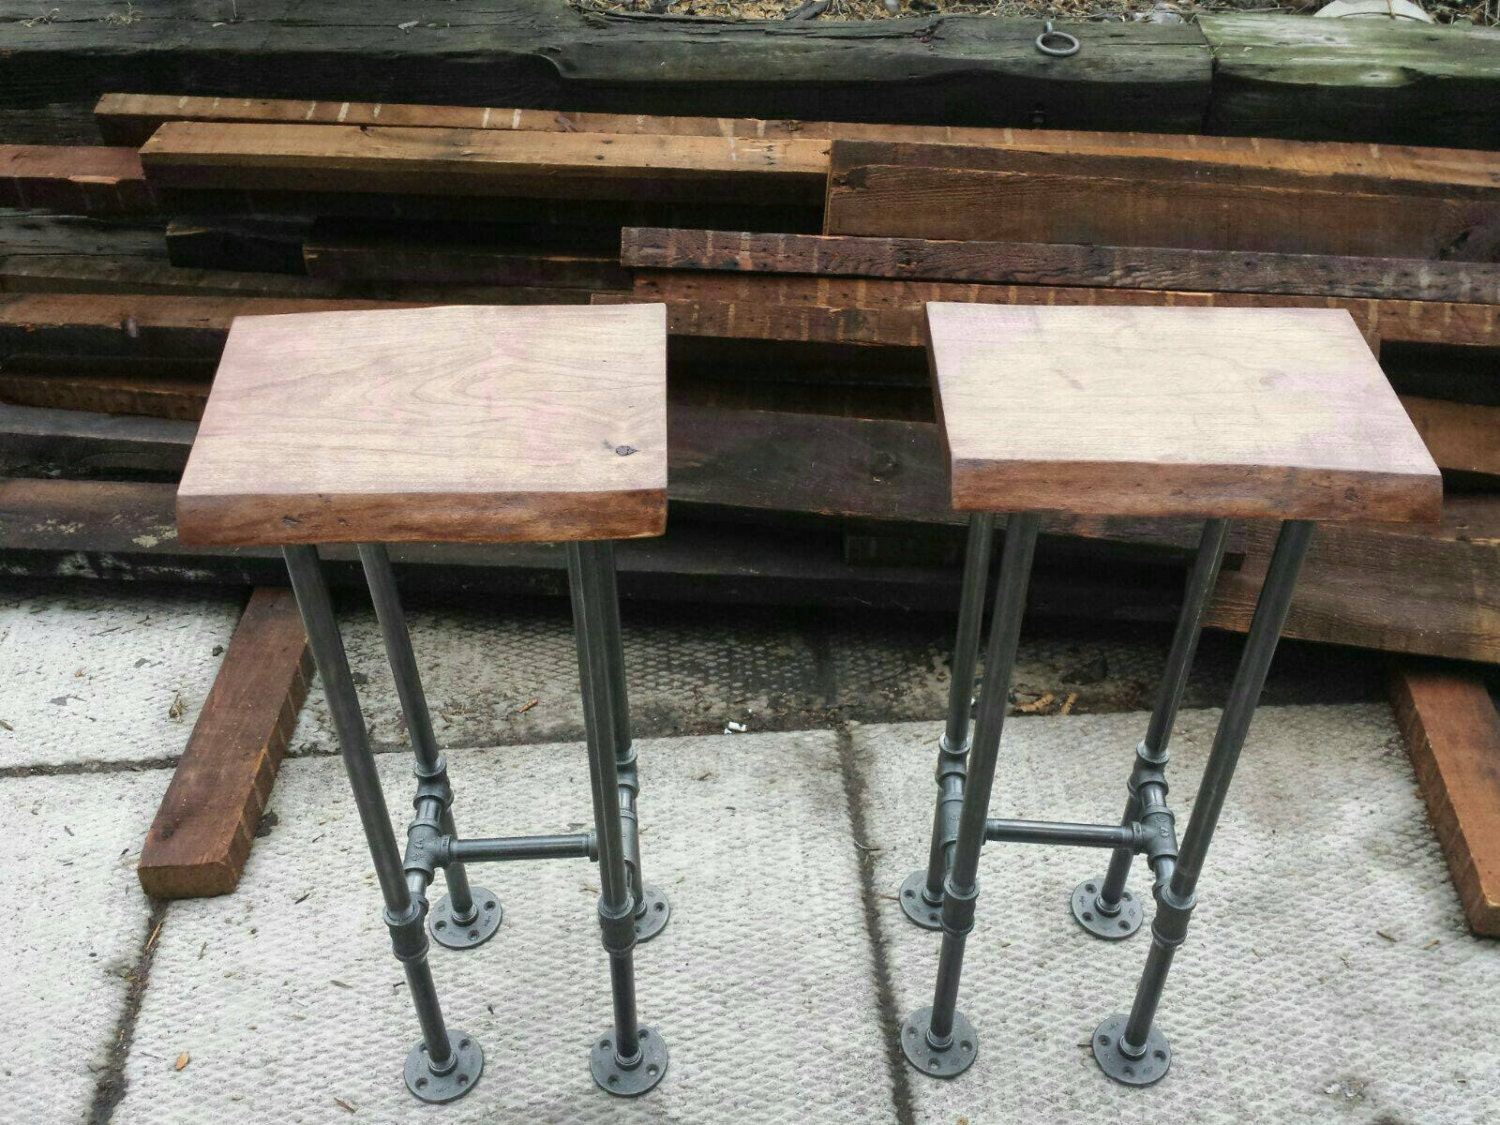 Reclaimed wood bar stool with industrial pipe legs || rustic bar stool ||  modern - Reclaimed Wood Stool Etsy